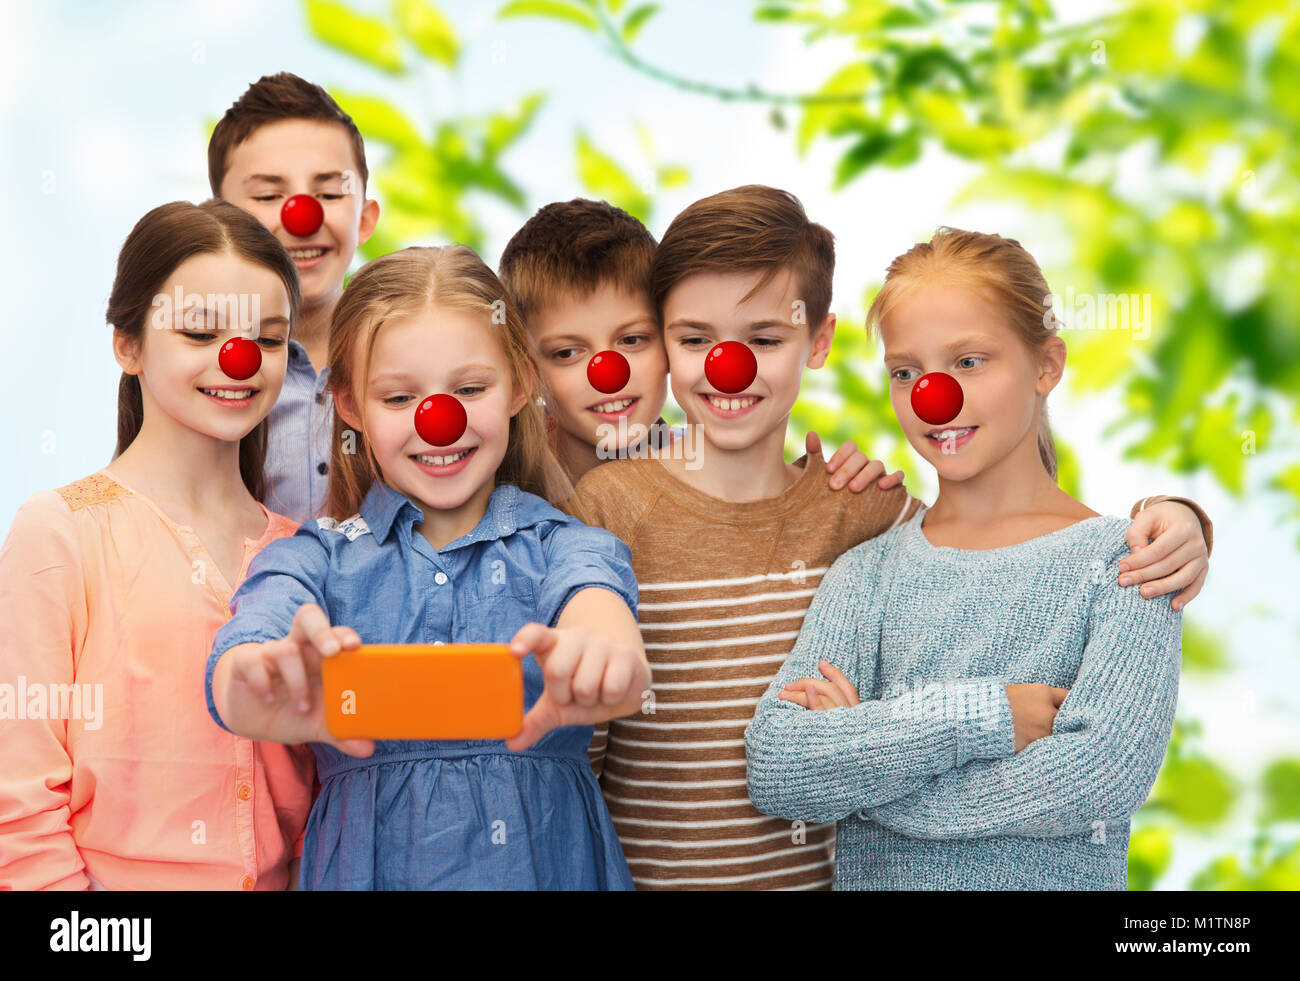 kids taking selfie with smartphone at red nose day - Stock Image